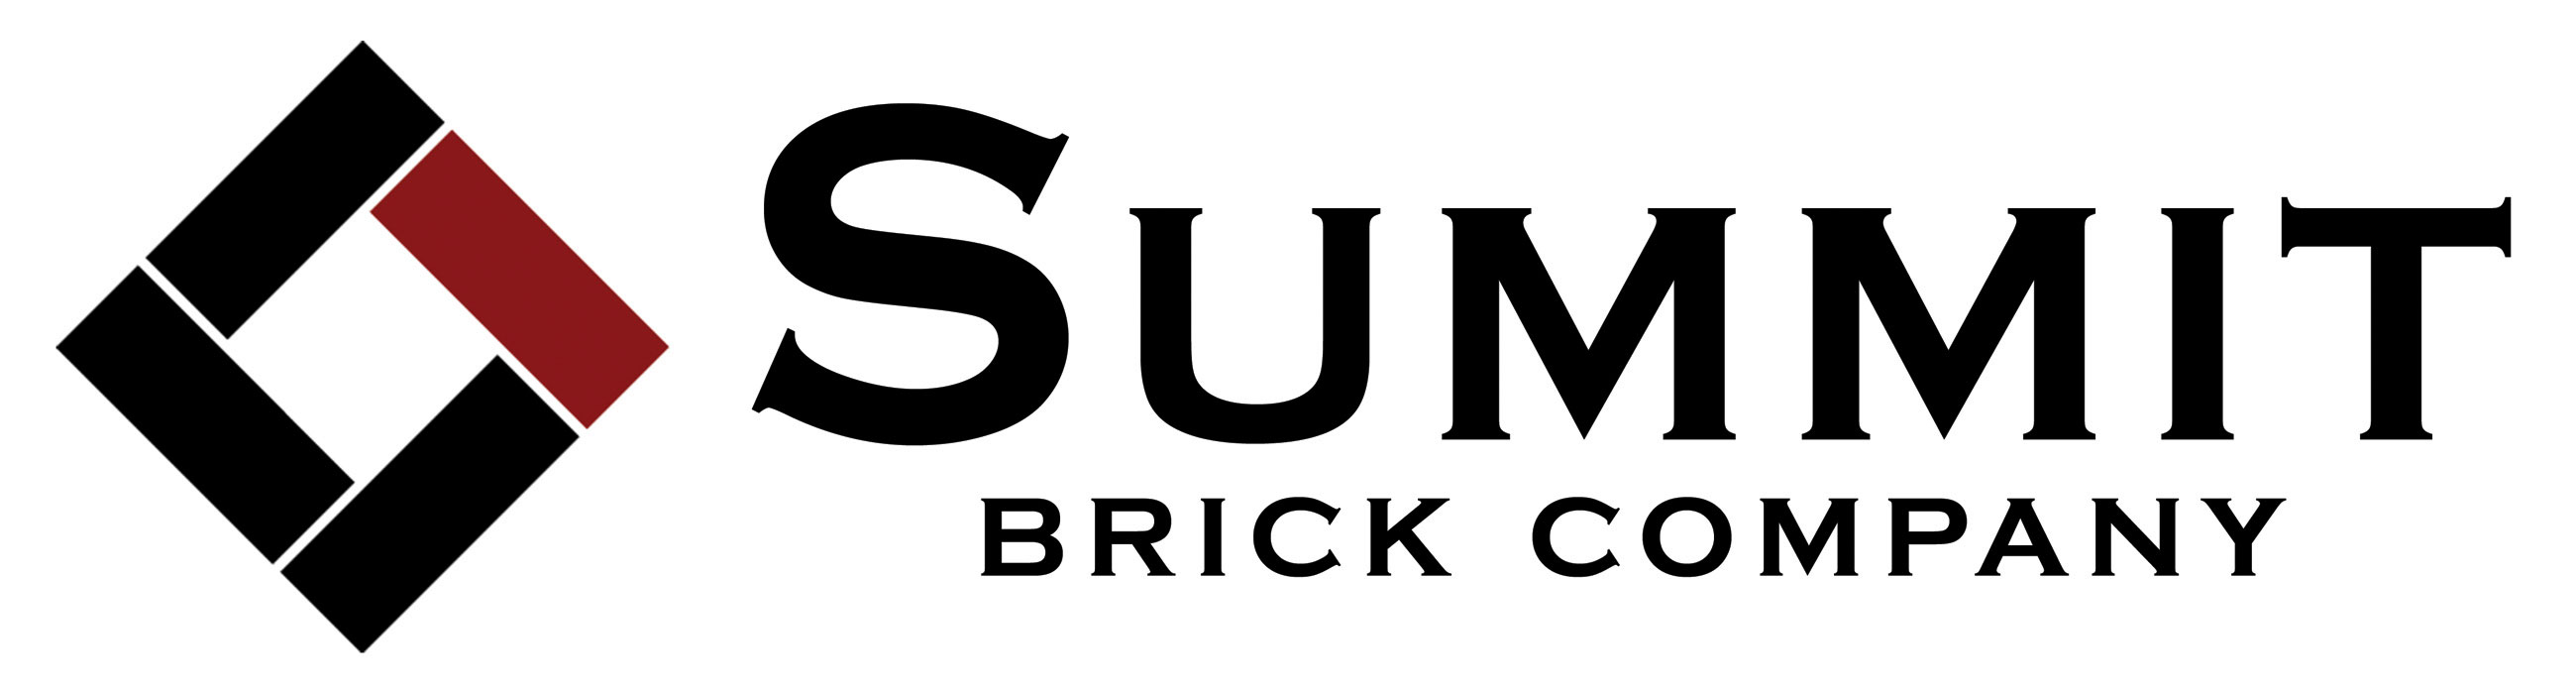 summit-brick-company-logo